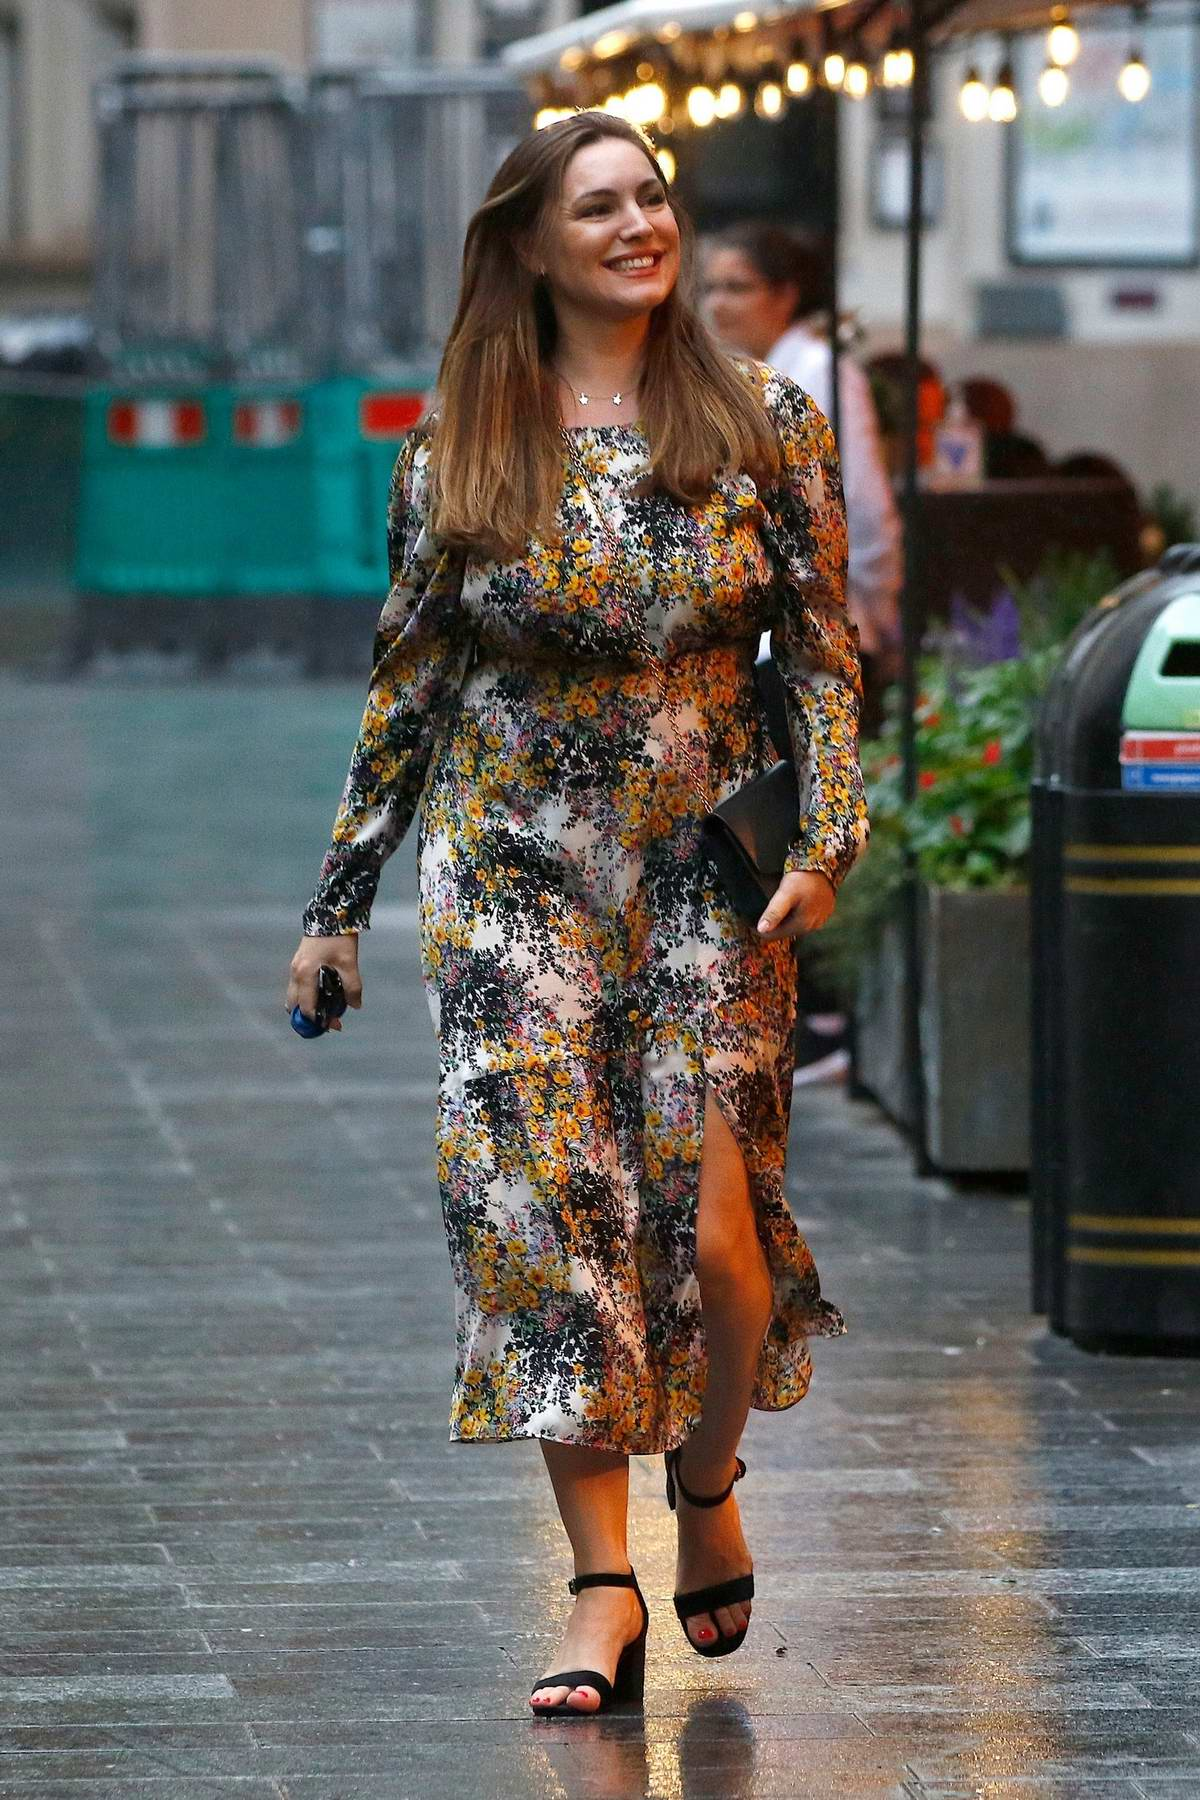 Kelly Brook is all smiles as she leaves Global Radio studios in a floral print dress in London, UK